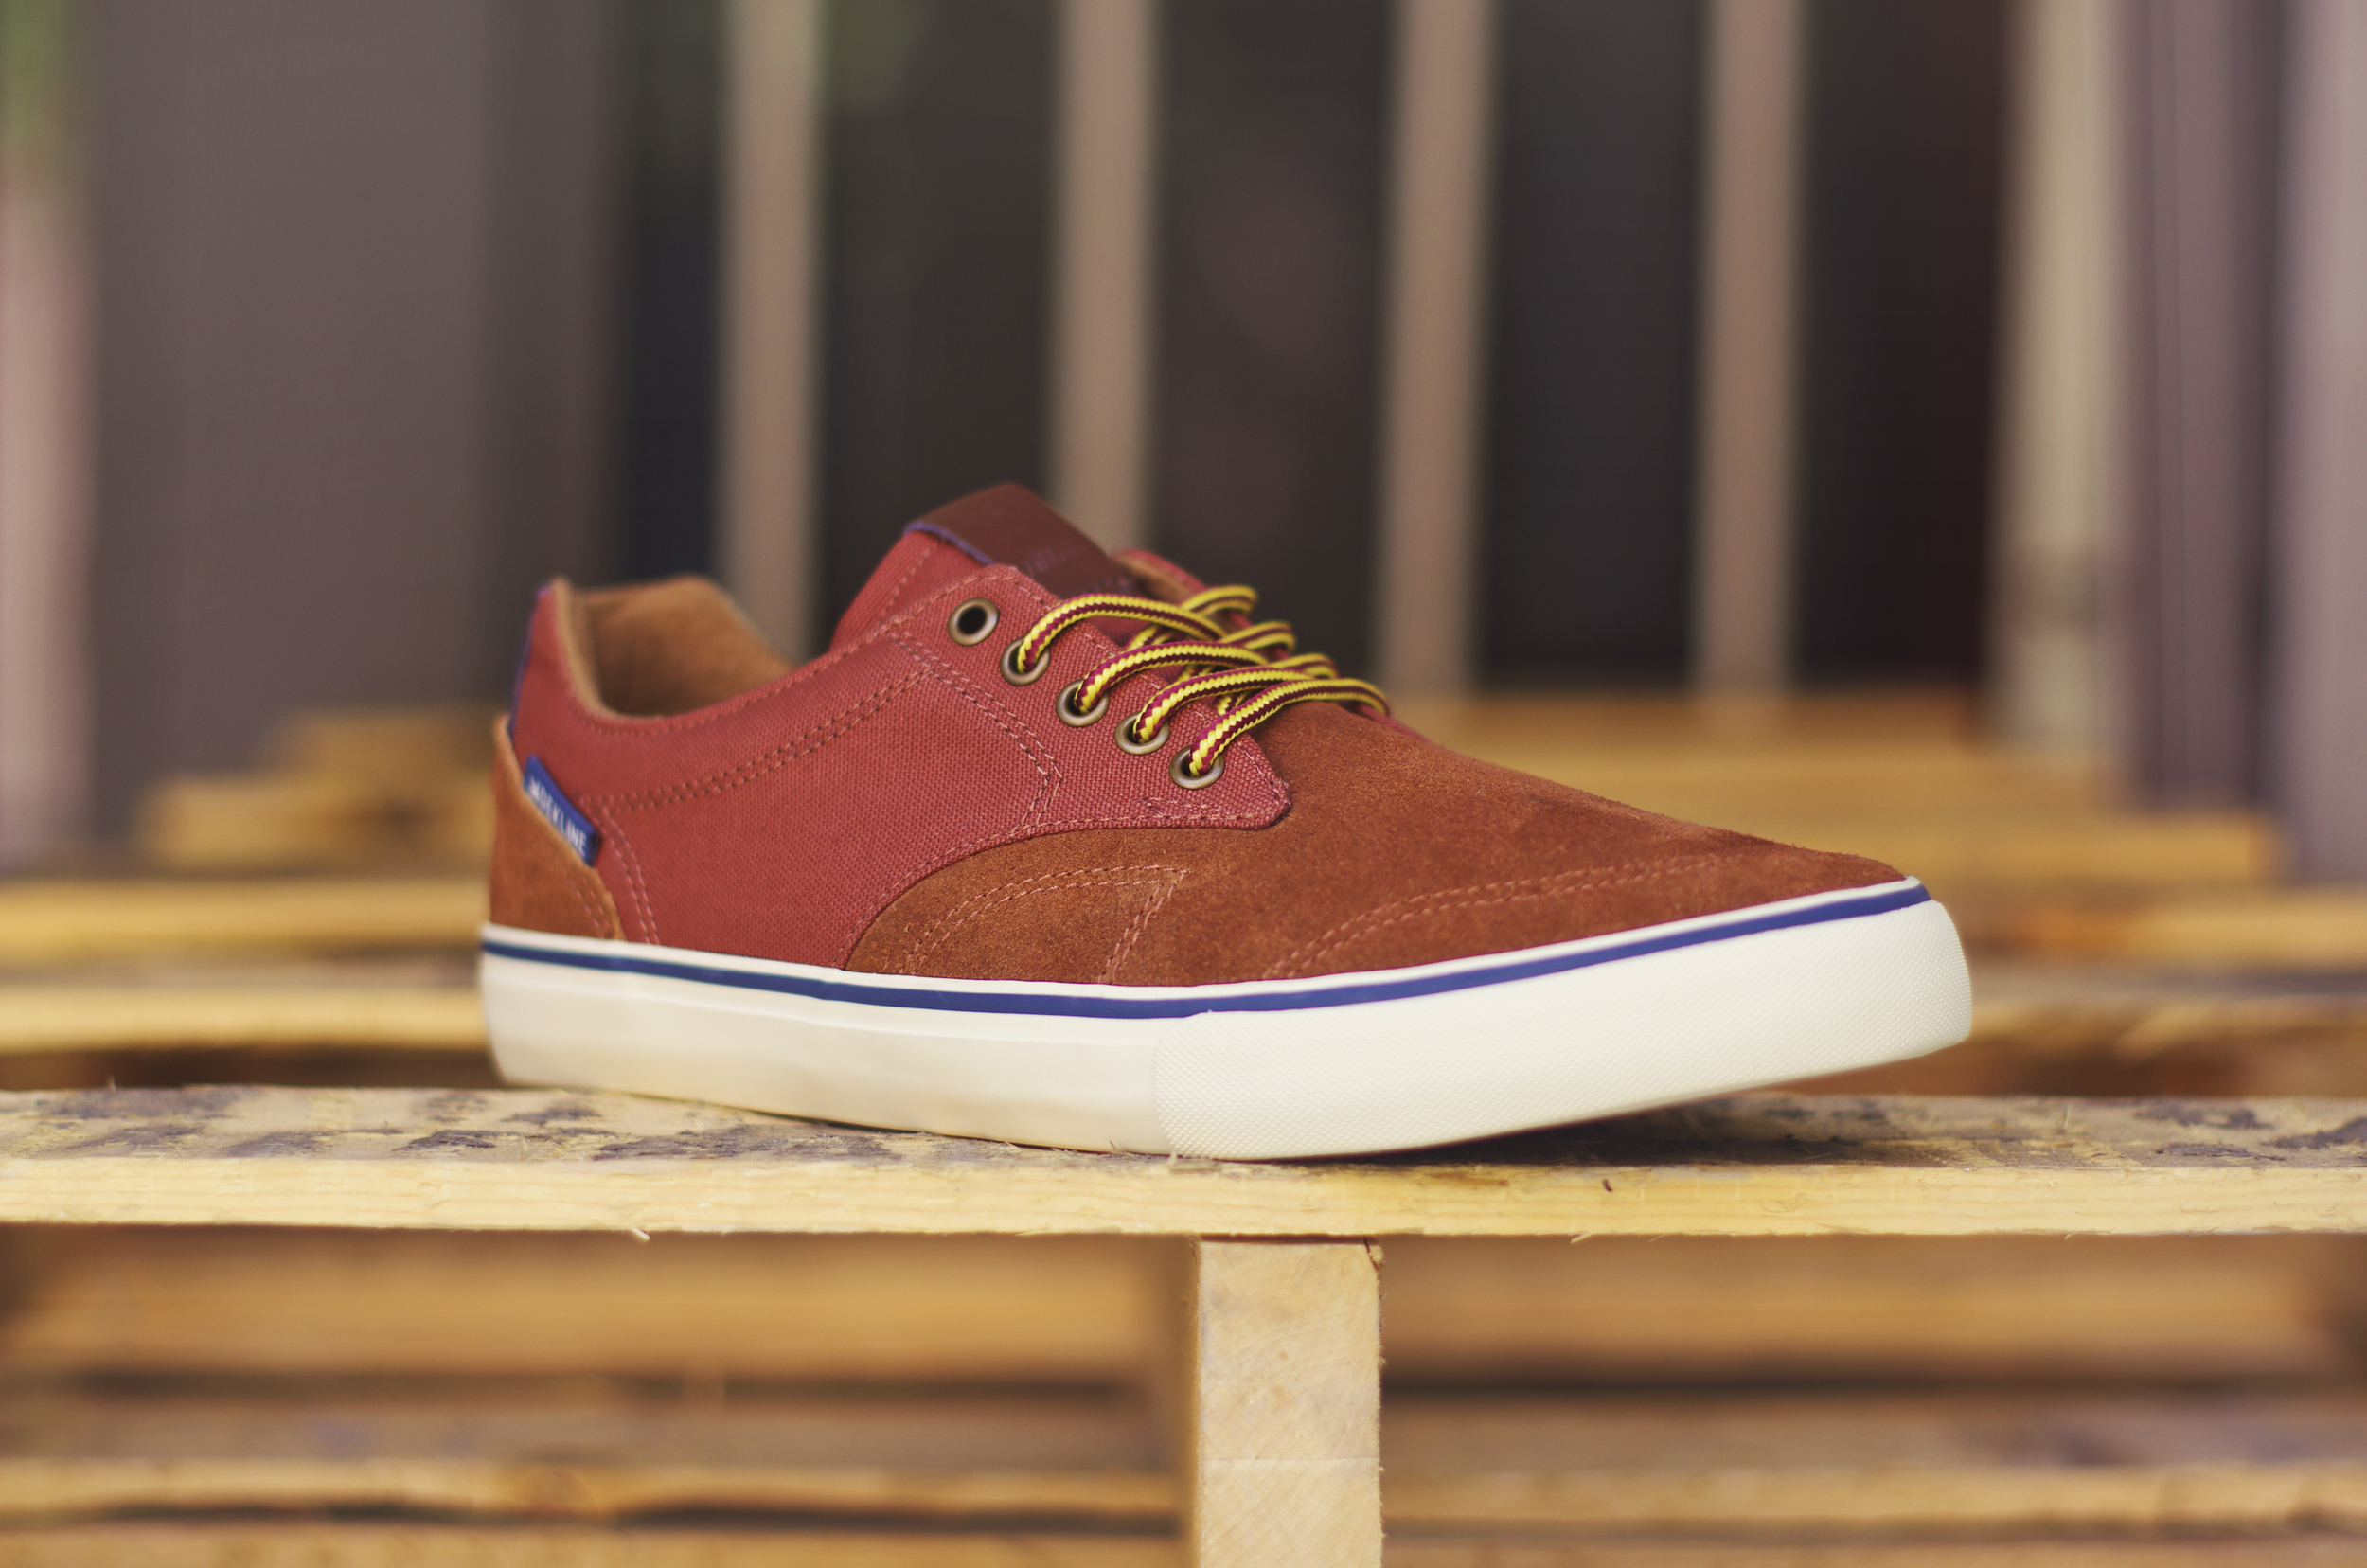 Tim Tim - $70 (Gingerbread/Antique White/Navy) This shoe comes in a suede and canvas upper with antique white vulc sole,  3M reflective heal, metal eyelets and work boot laces.